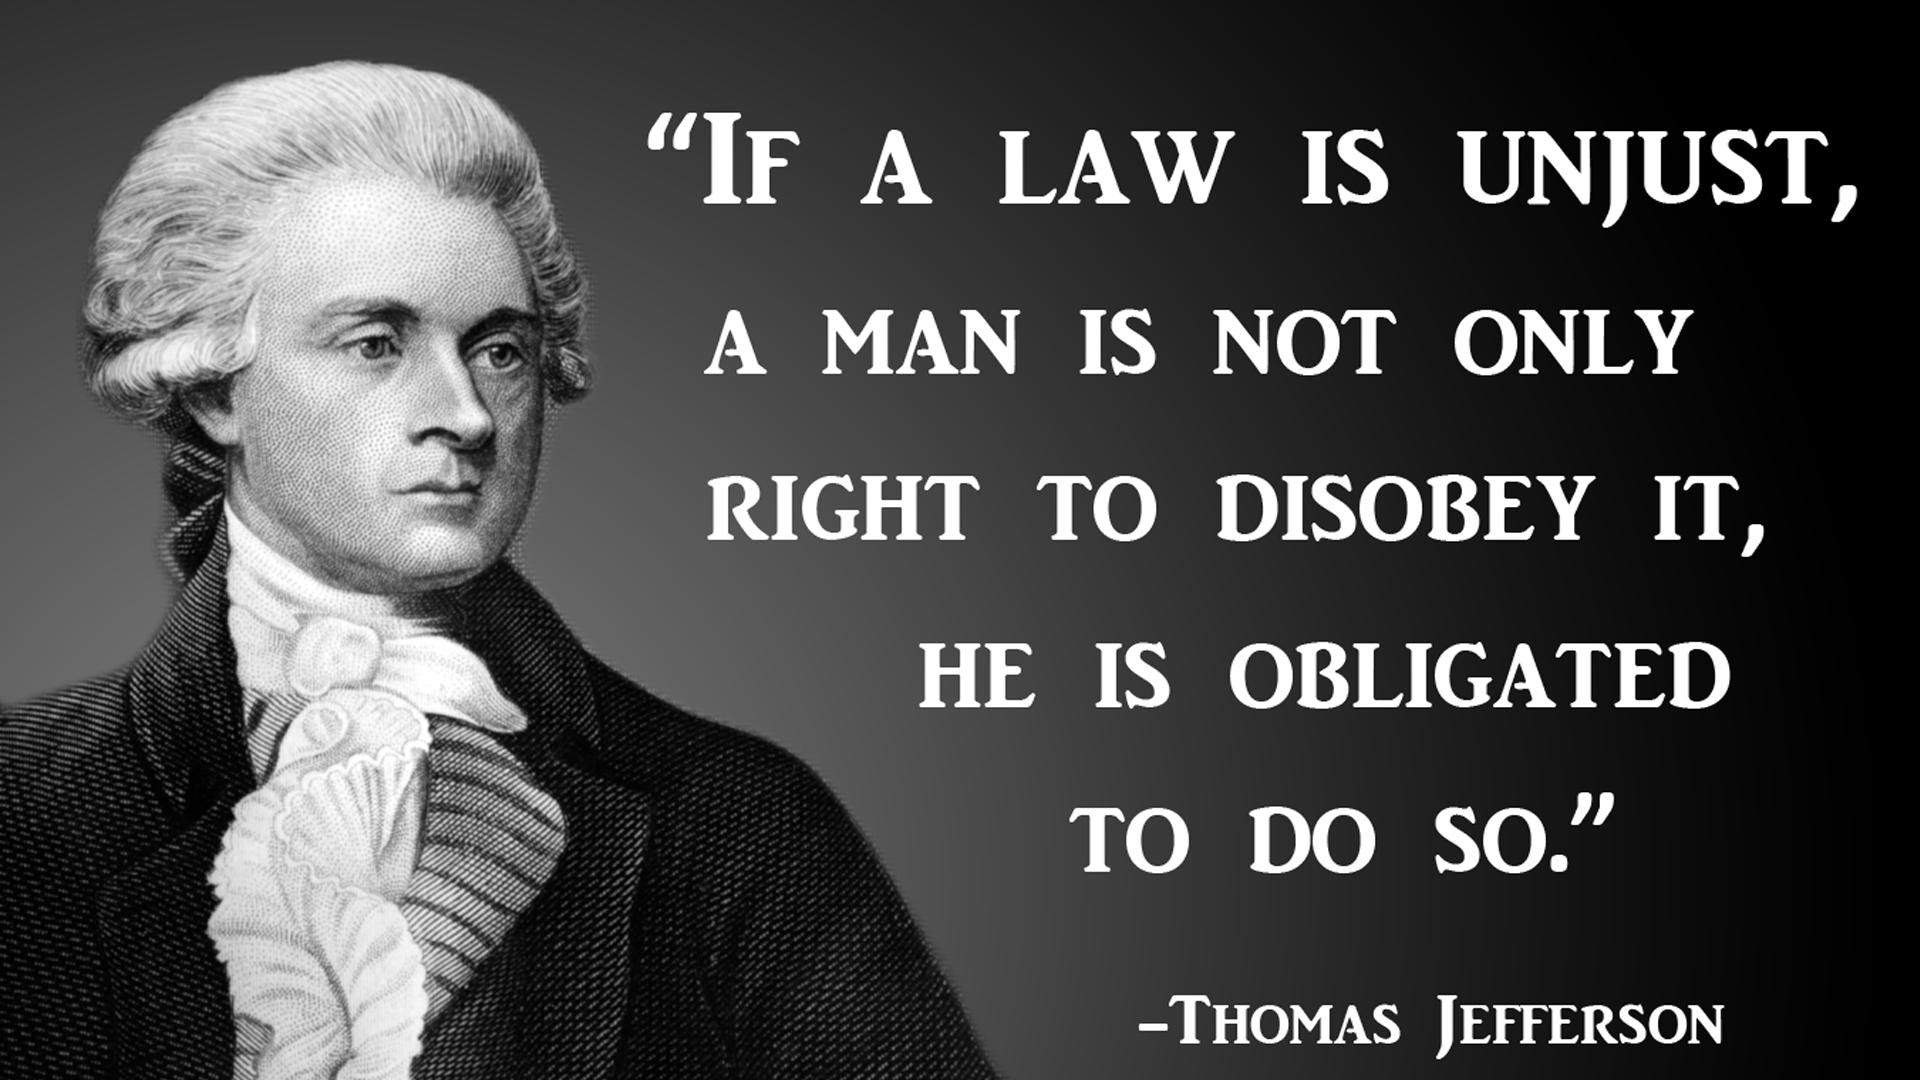 If A Law Is Unjust Jefferson Quote 1366x768 Oc Wallpapers